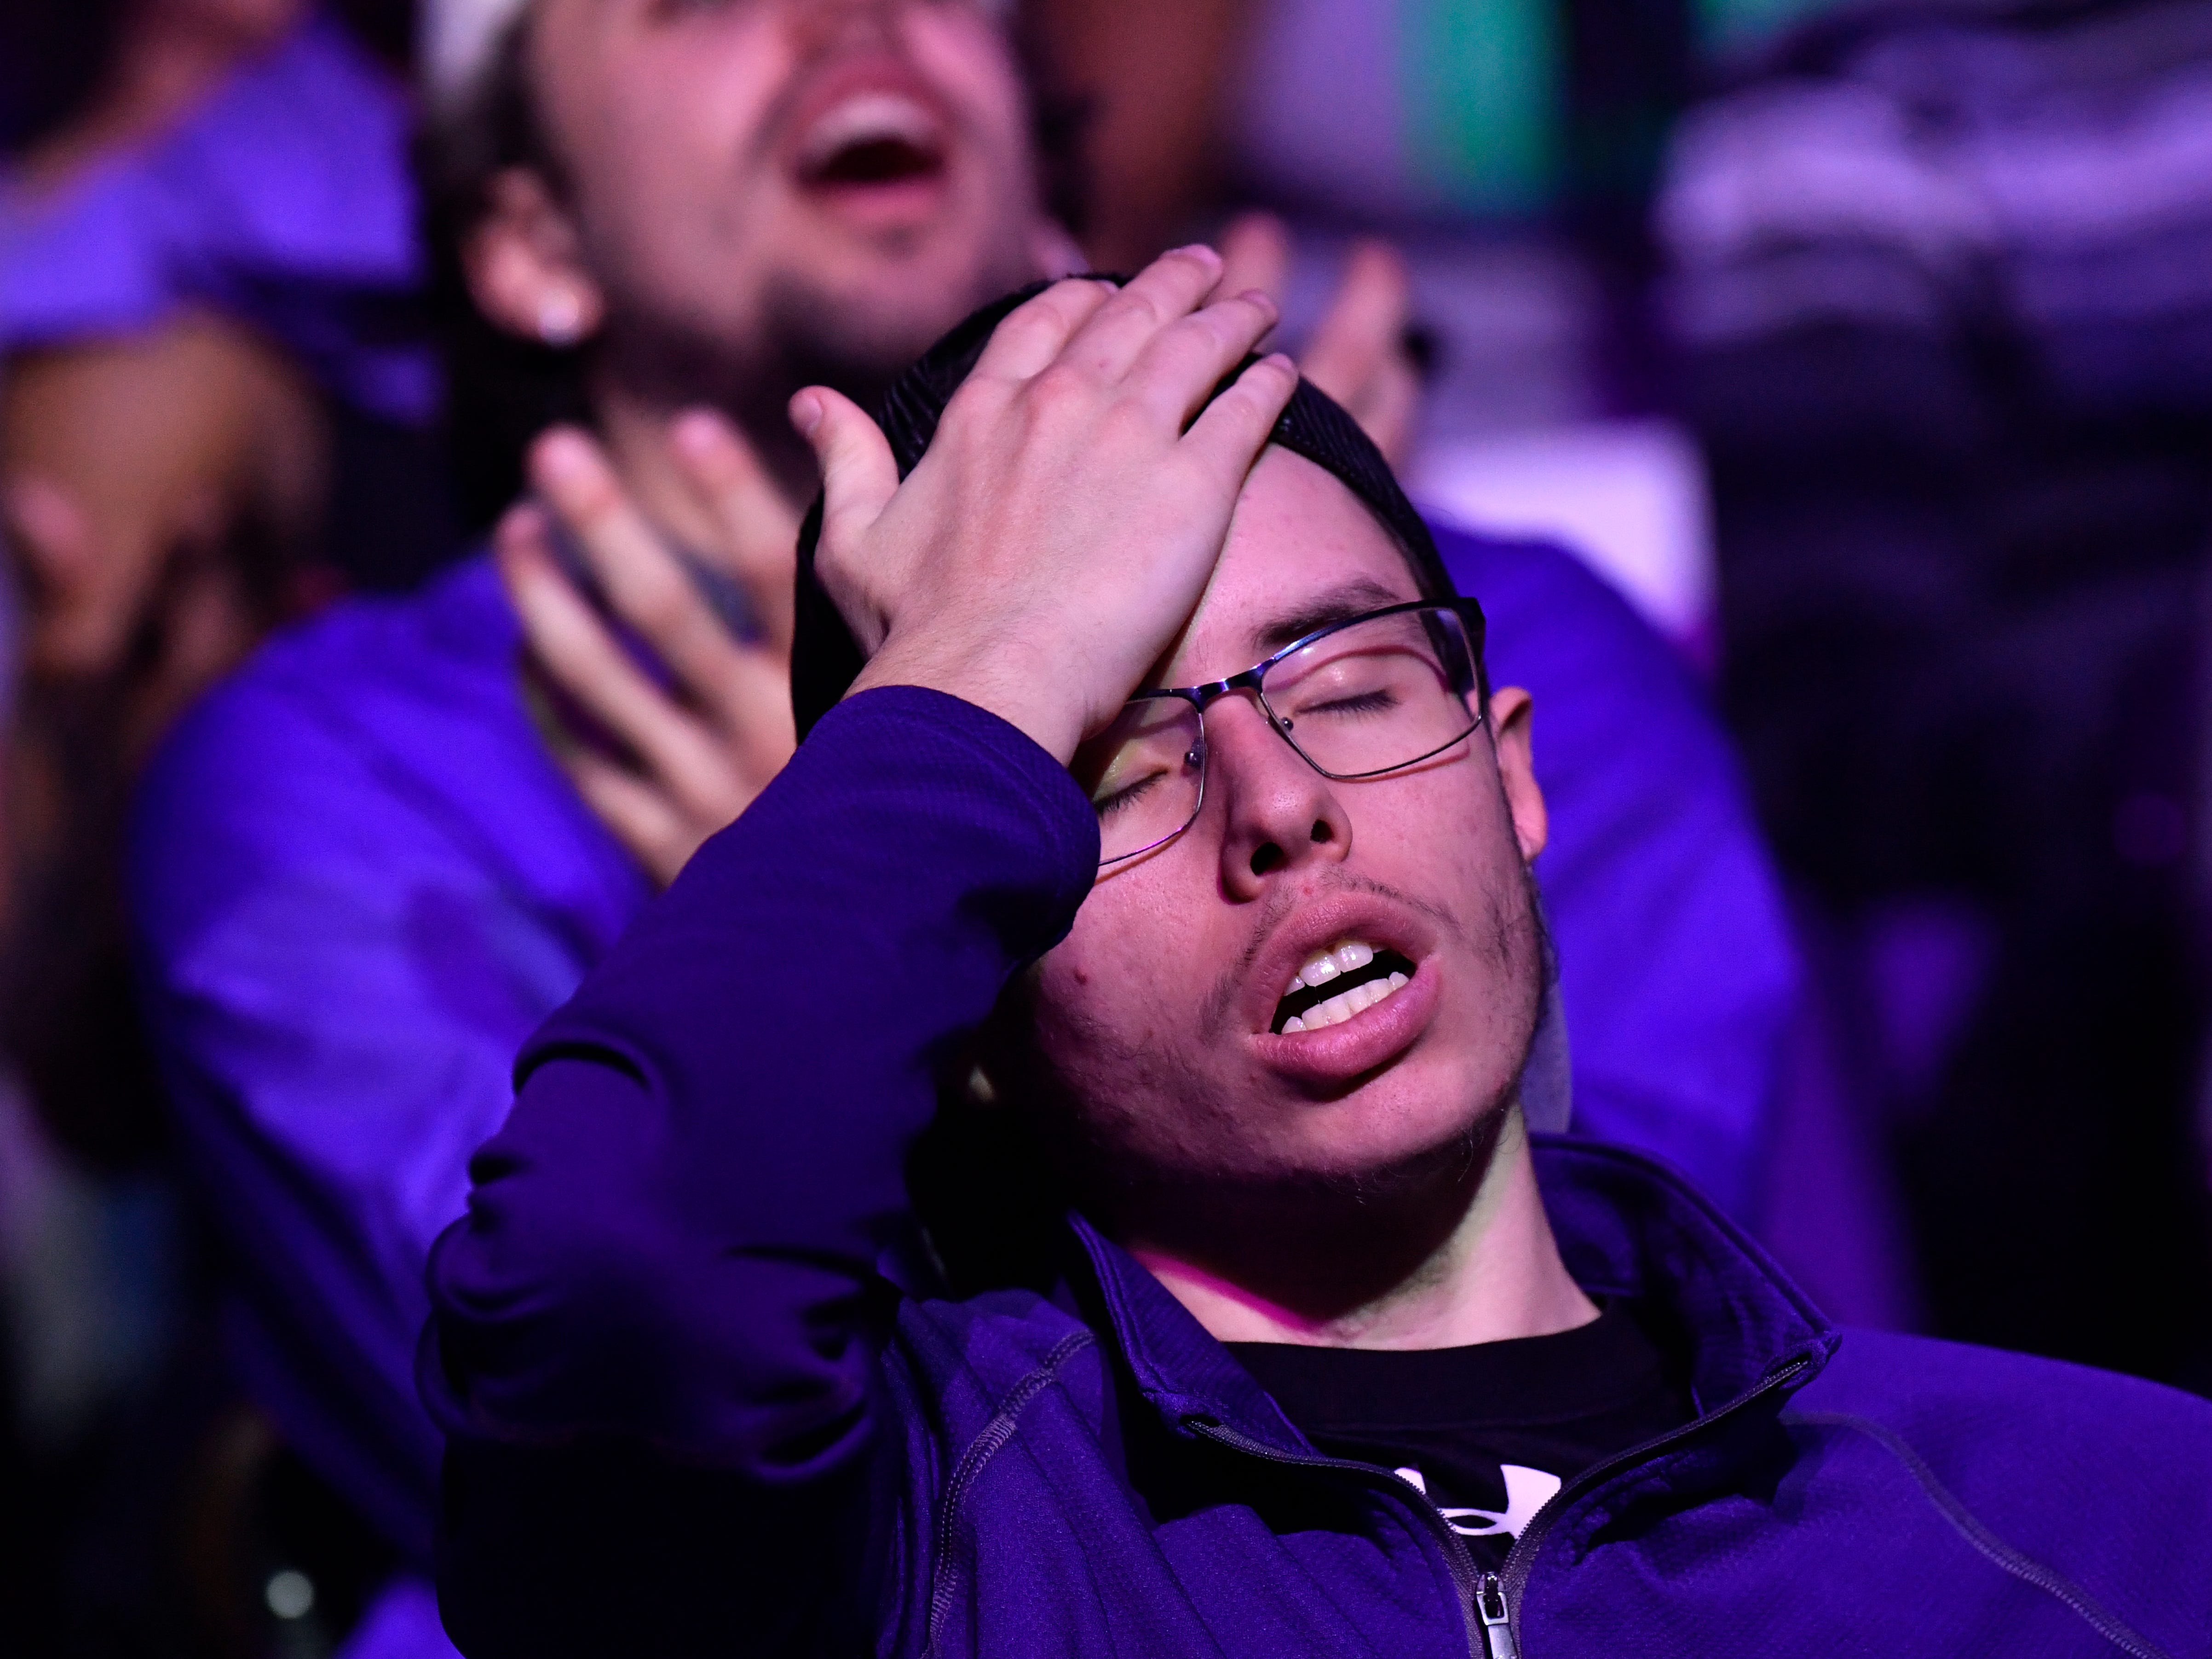 Garrett White reacts to a missed shot by the Wildcats while watching Abilene Christian University play the University of Kentucky at a watch party in Moody Coliseum Thursday March 21, 2019. This was the ACU men's first-ever trip to the NCAA Tournament. Final score was 79-44, Kentucky.